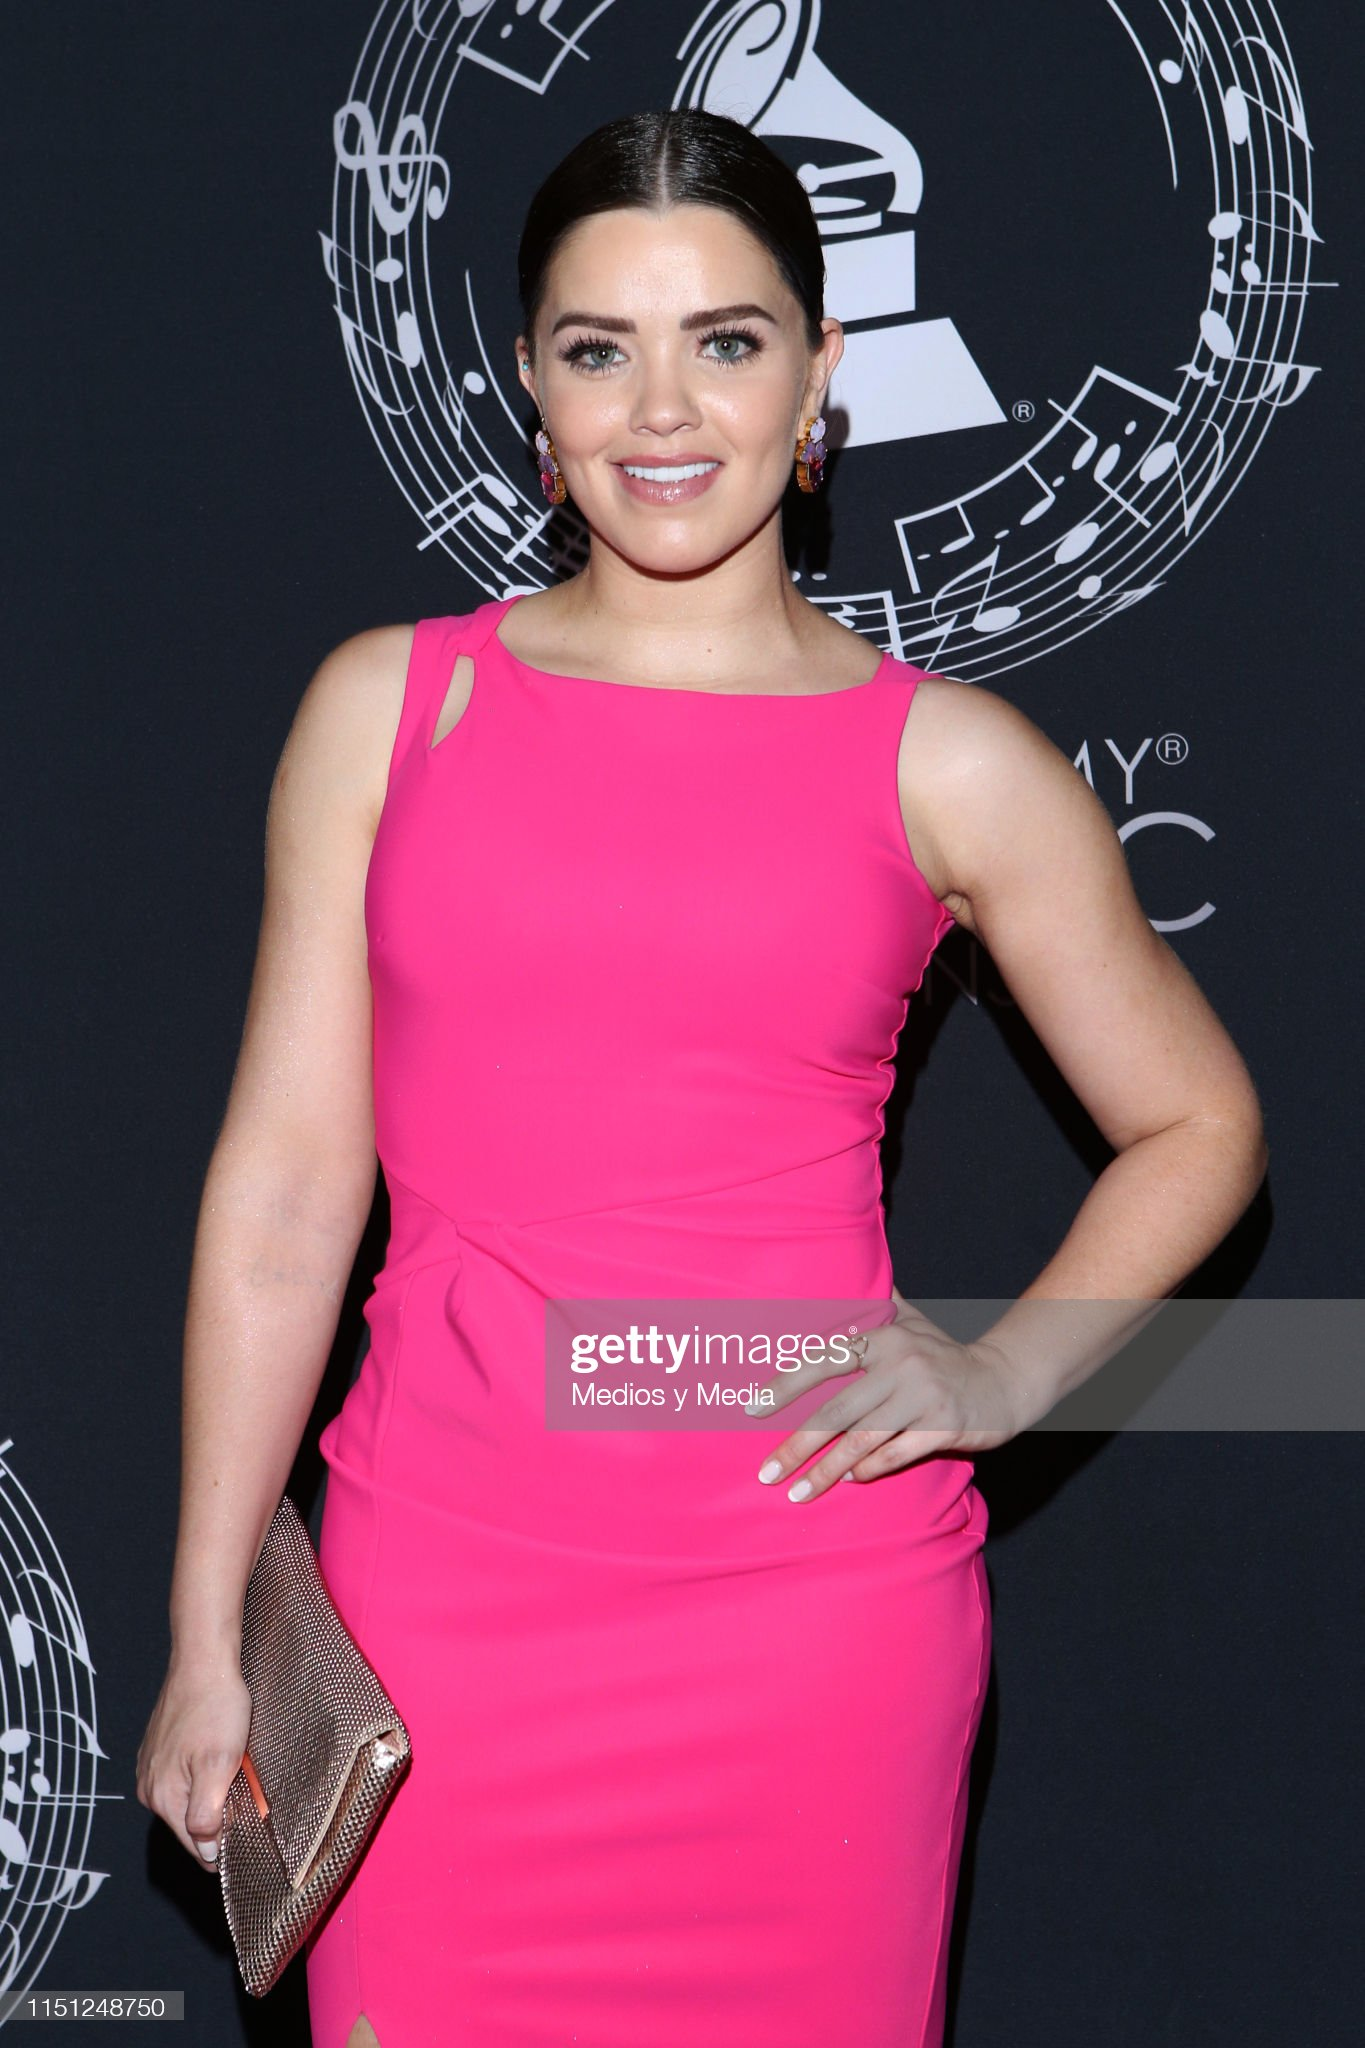 https://media.gettyimages.com/photos/thali-garcia-poses-for-photos-during-the-latin-grammy-red-carpet-at-picture-id1151248750?s=2048x2048